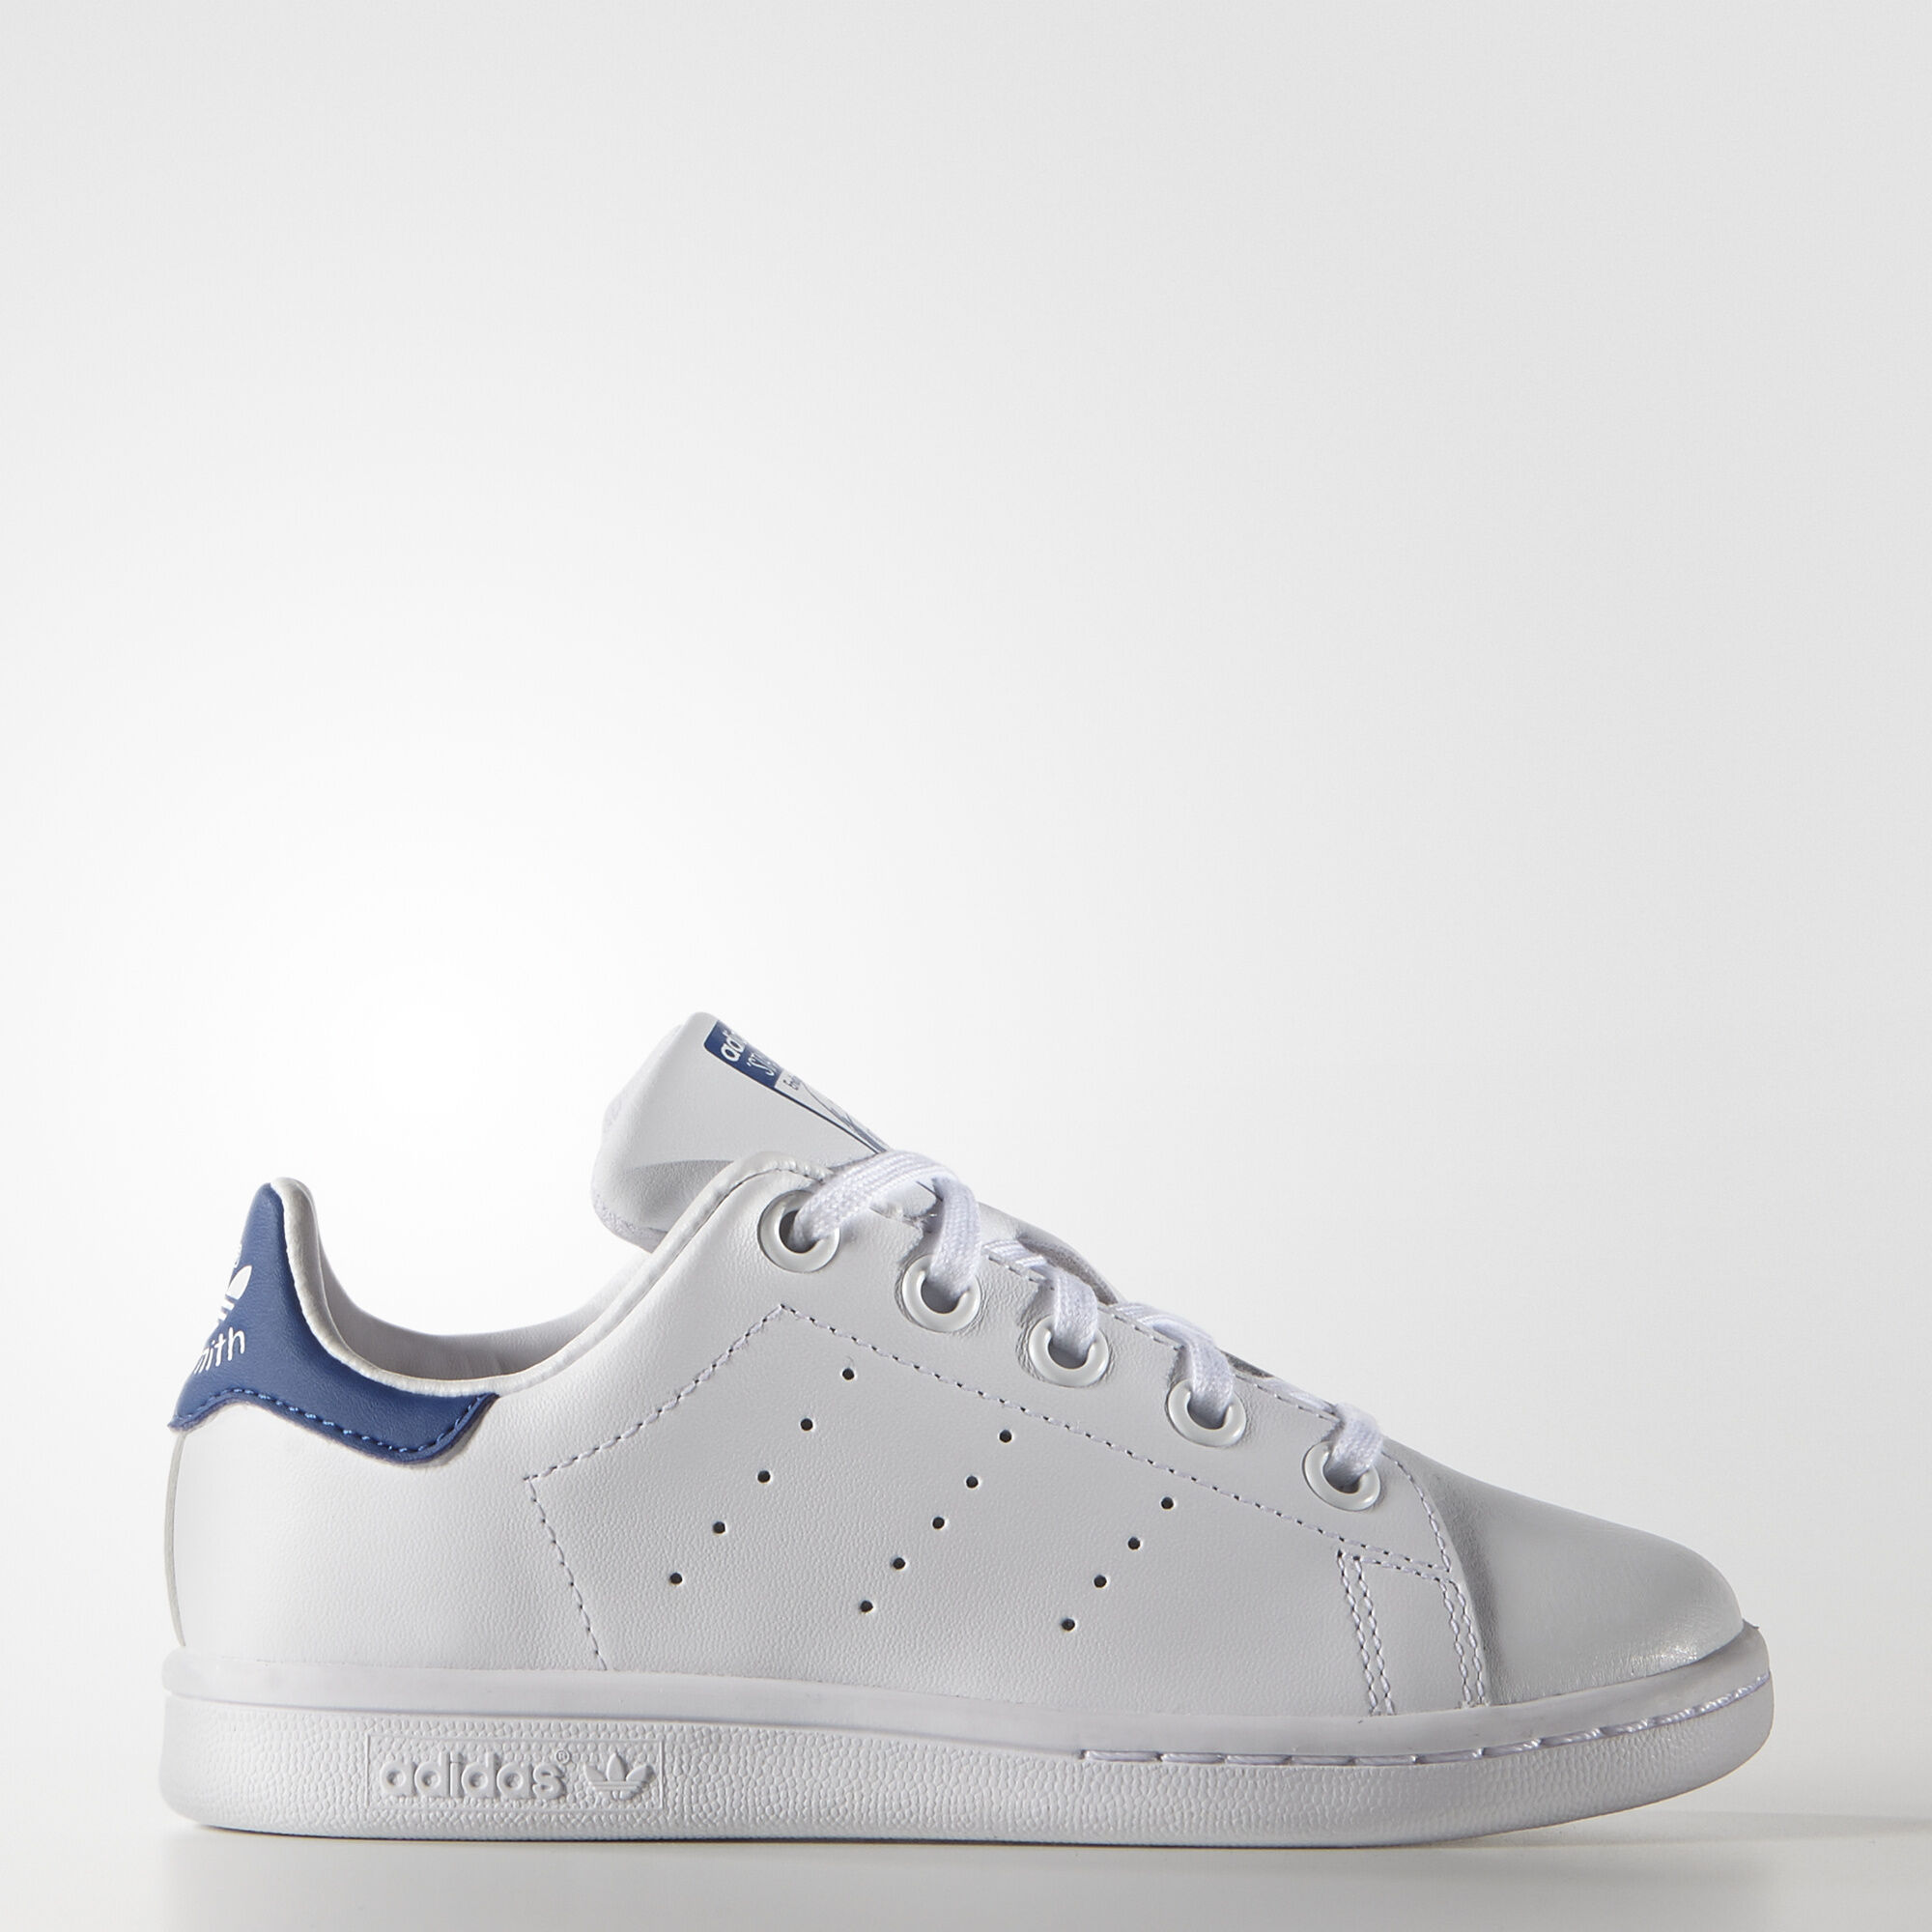 Adidas Stan Smith Mens Shoes